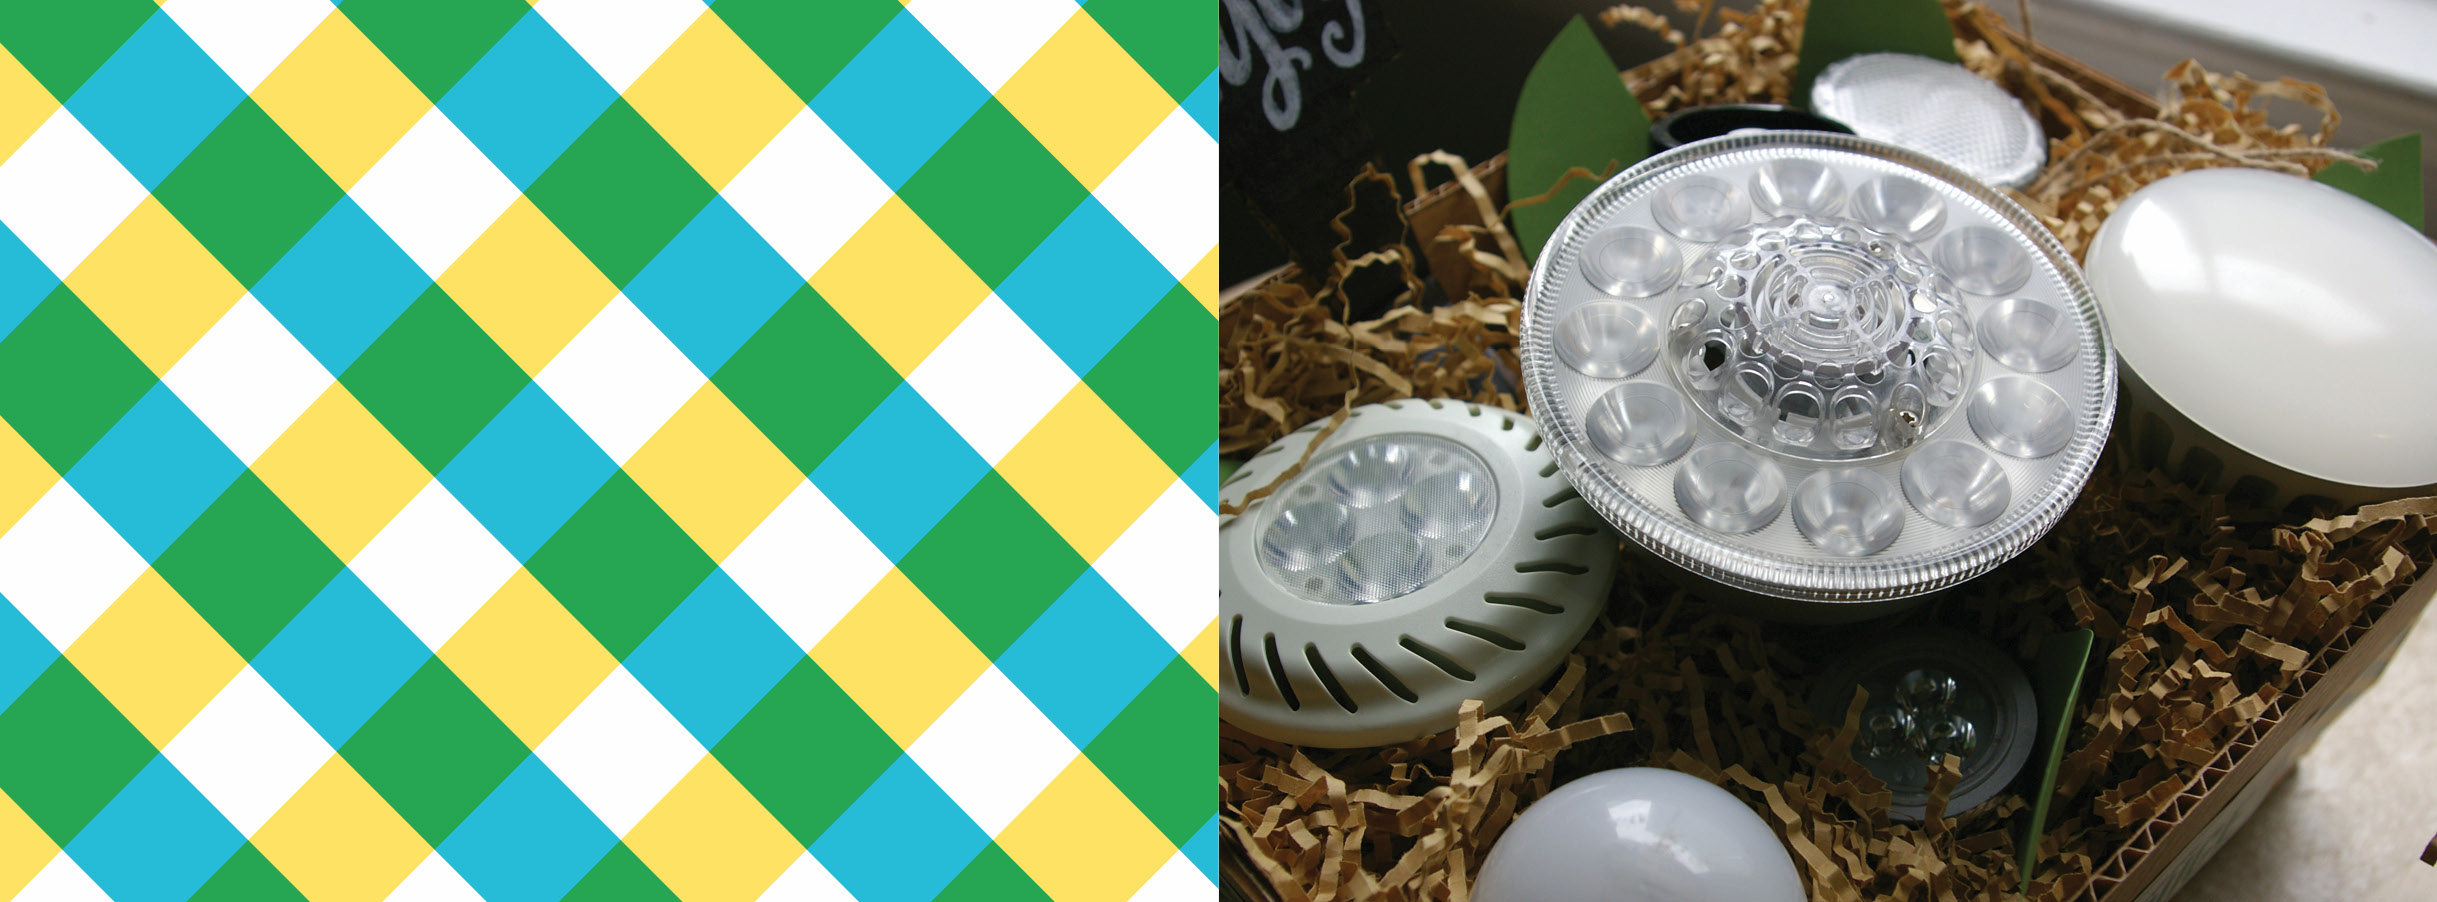 The left half of the image is a plaid pattern made by the three colors of the DCSEU brand: green, yellow and blue. The right half of the image is a closeup of unwrapped bulbs that are in the promotional package.